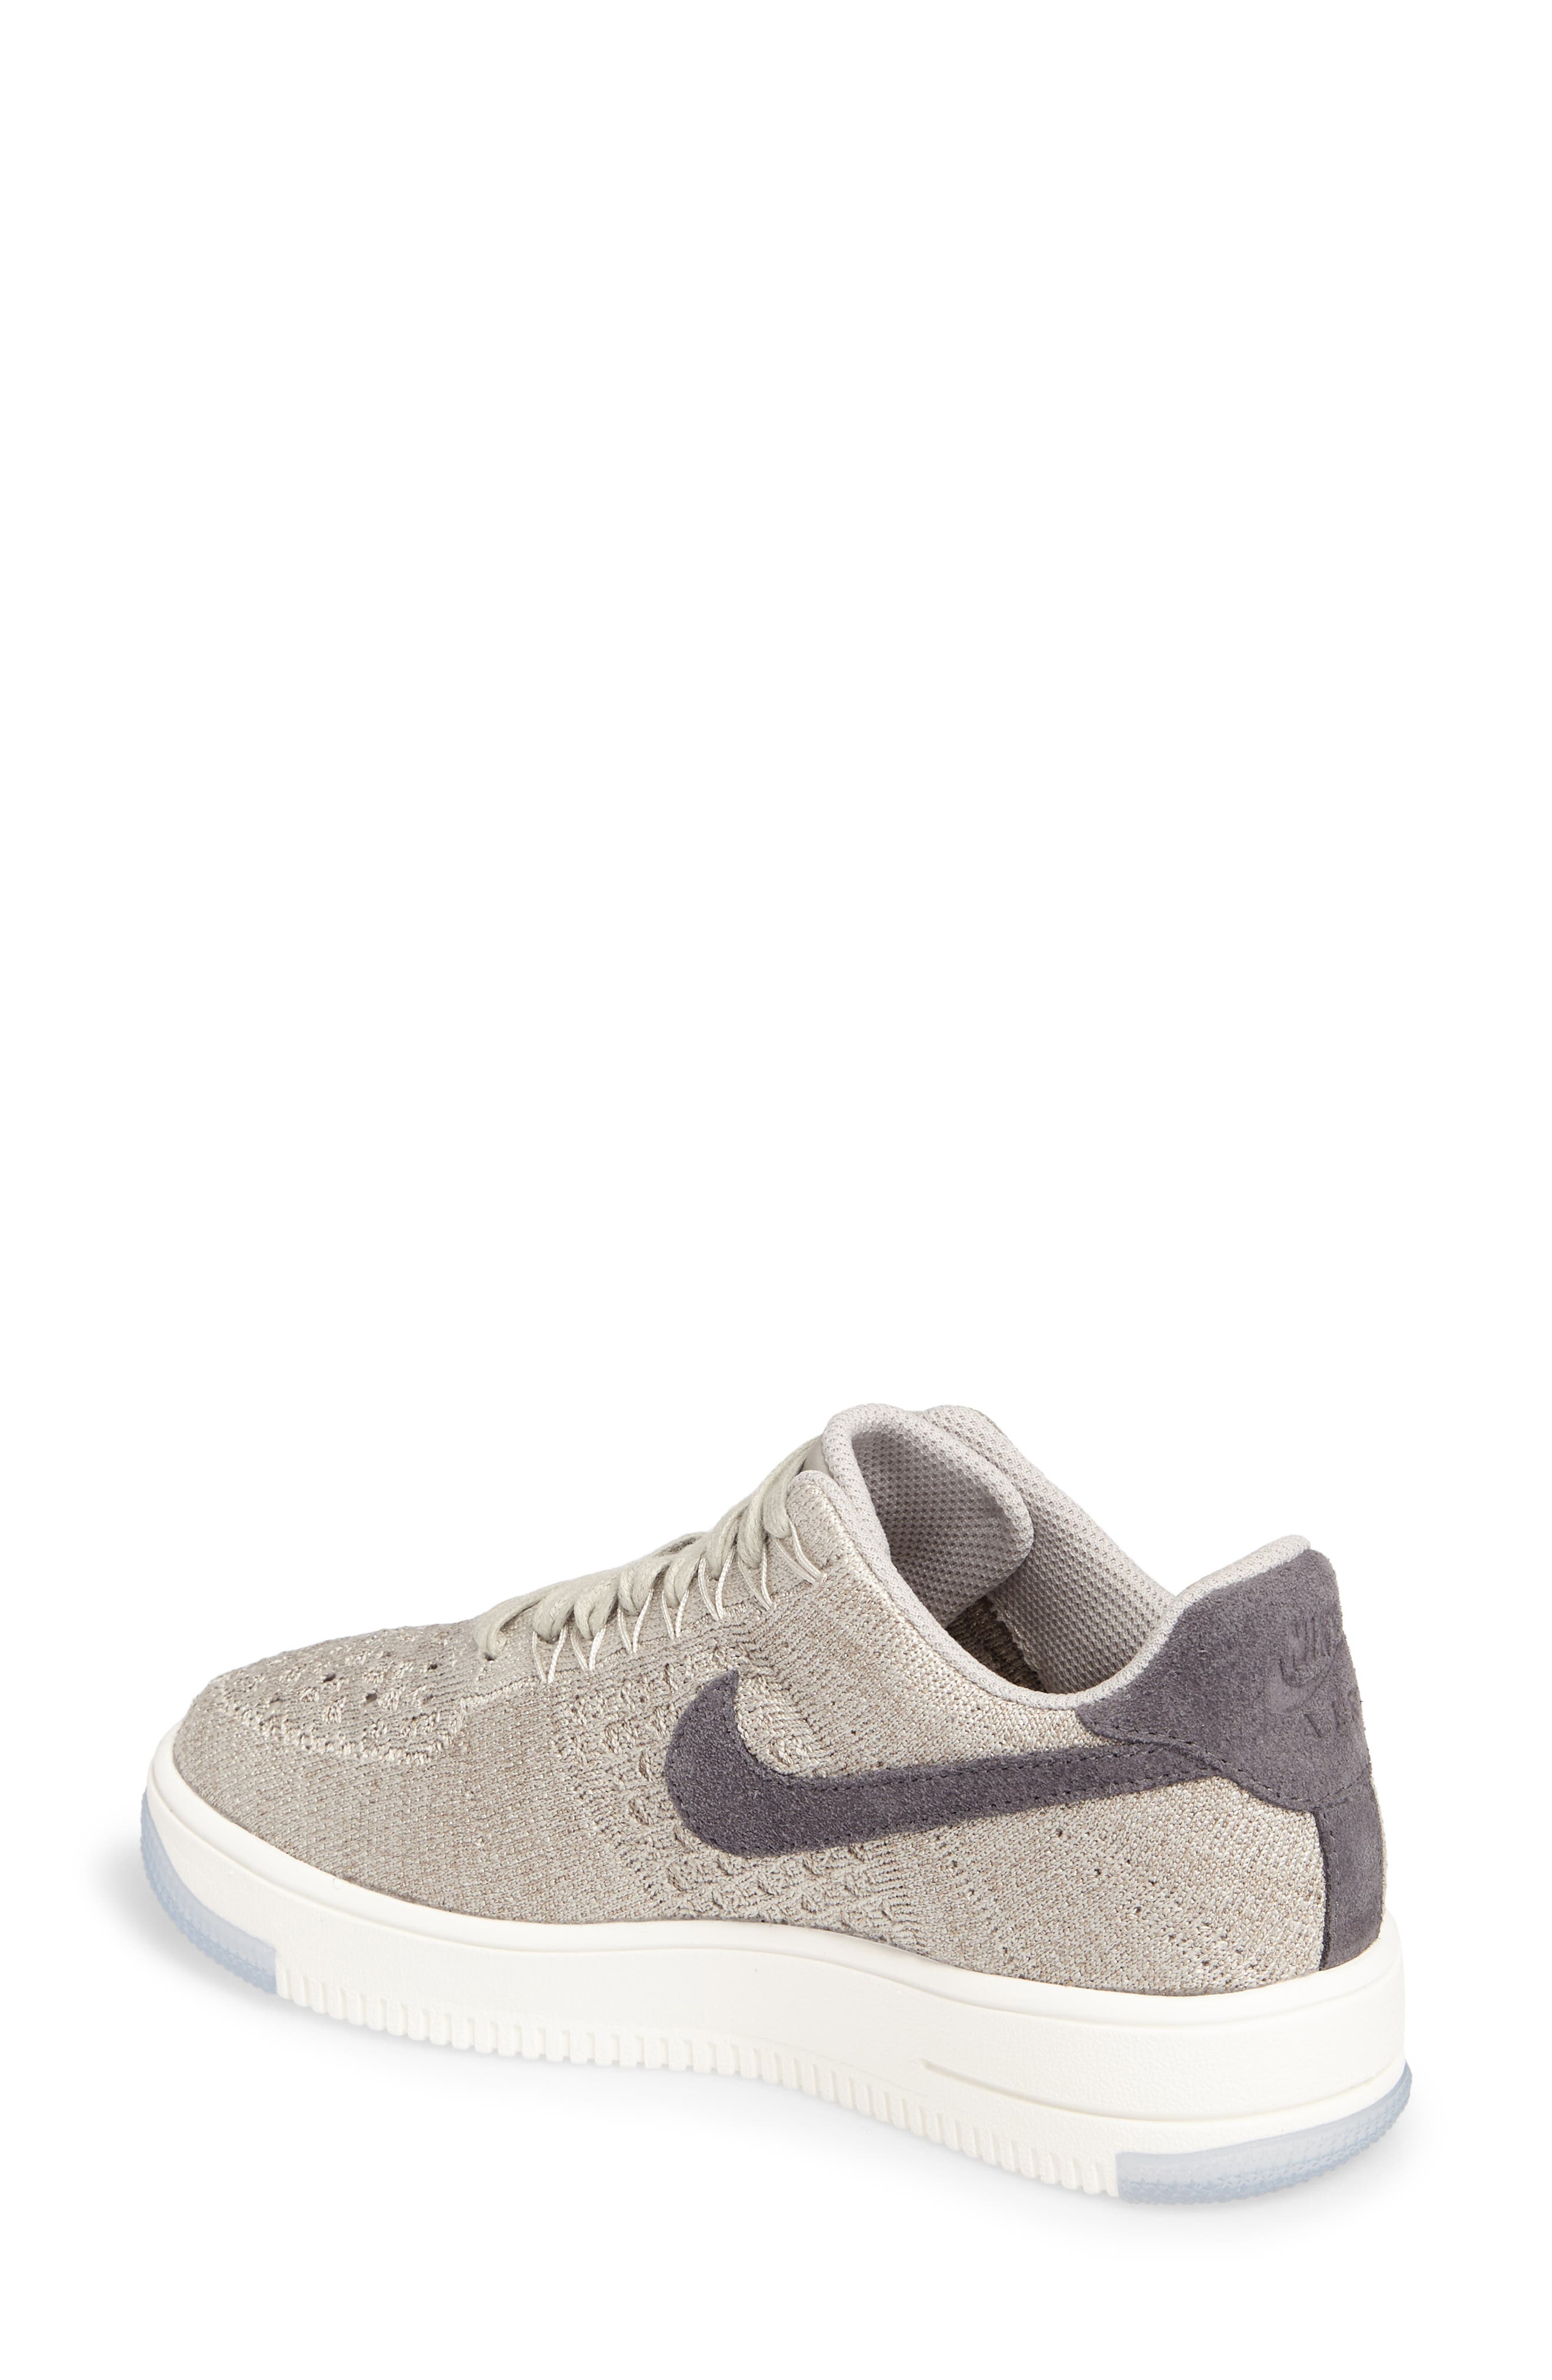 'Air Force 1 Flyknit Low' Sneaker,                             Alternate thumbnail 10, color,